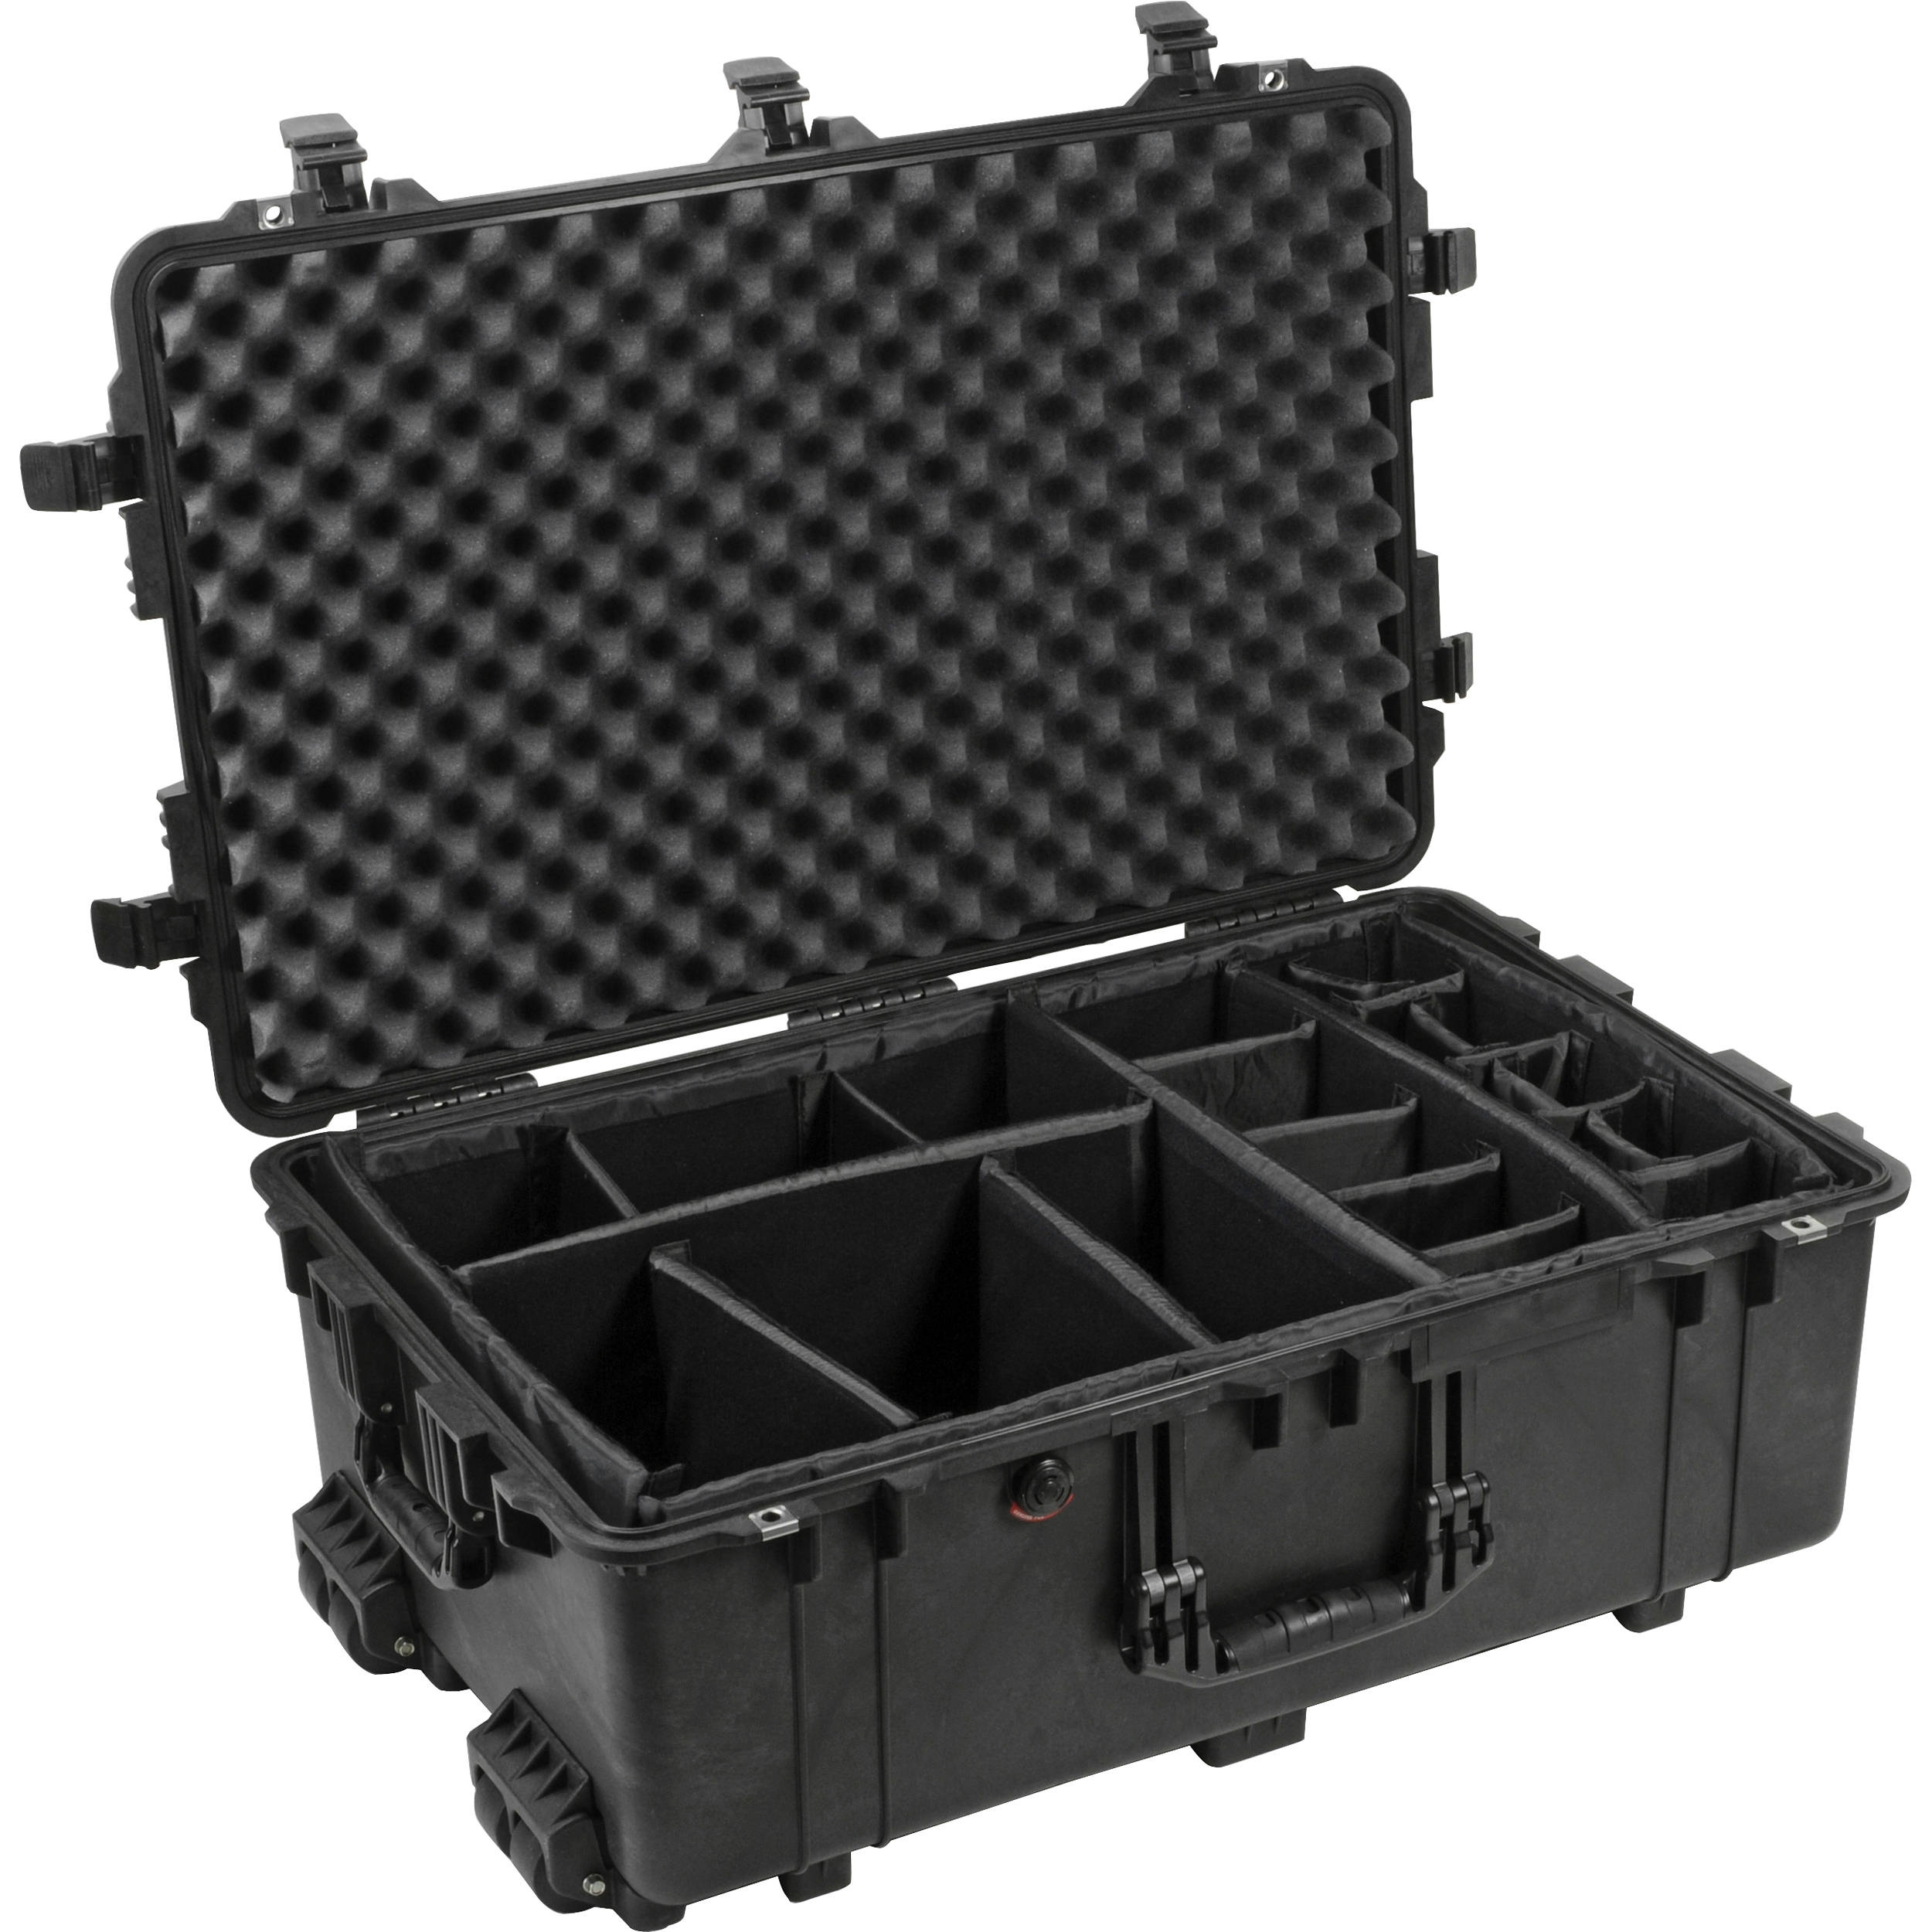 Pelican 1654 Case with Padded Dividers (Black)